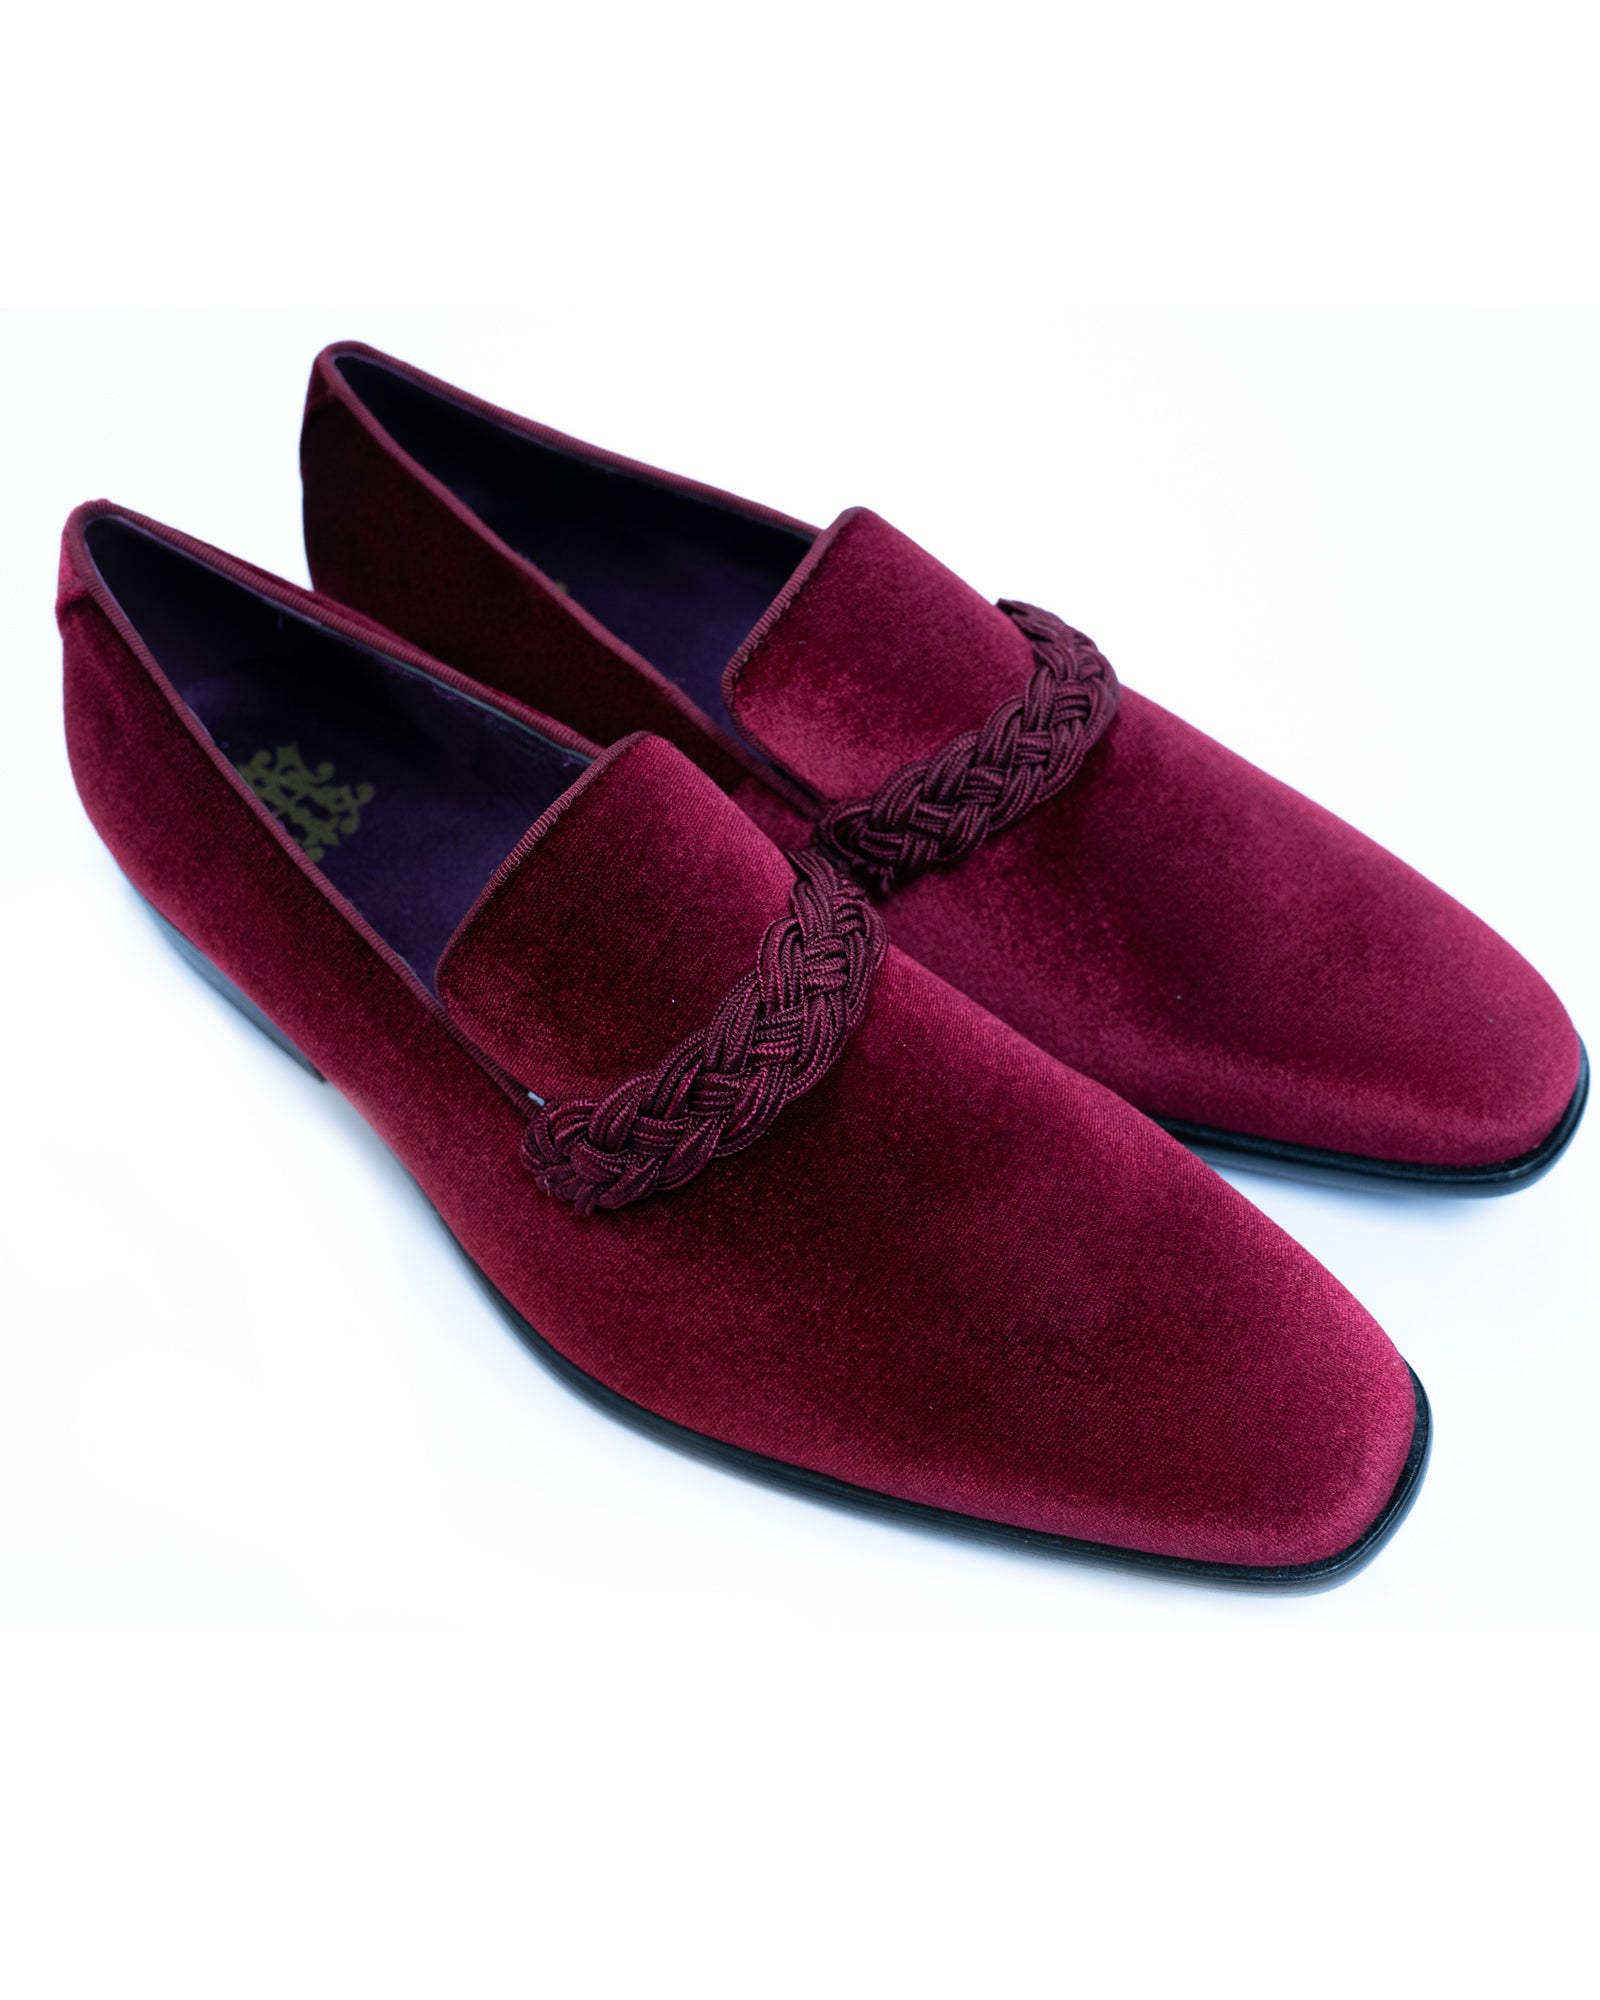 After Midnight Velour with Braid Formal Loafer in Wine - Rainwater's Men's Clothing and Tuxedo Rental